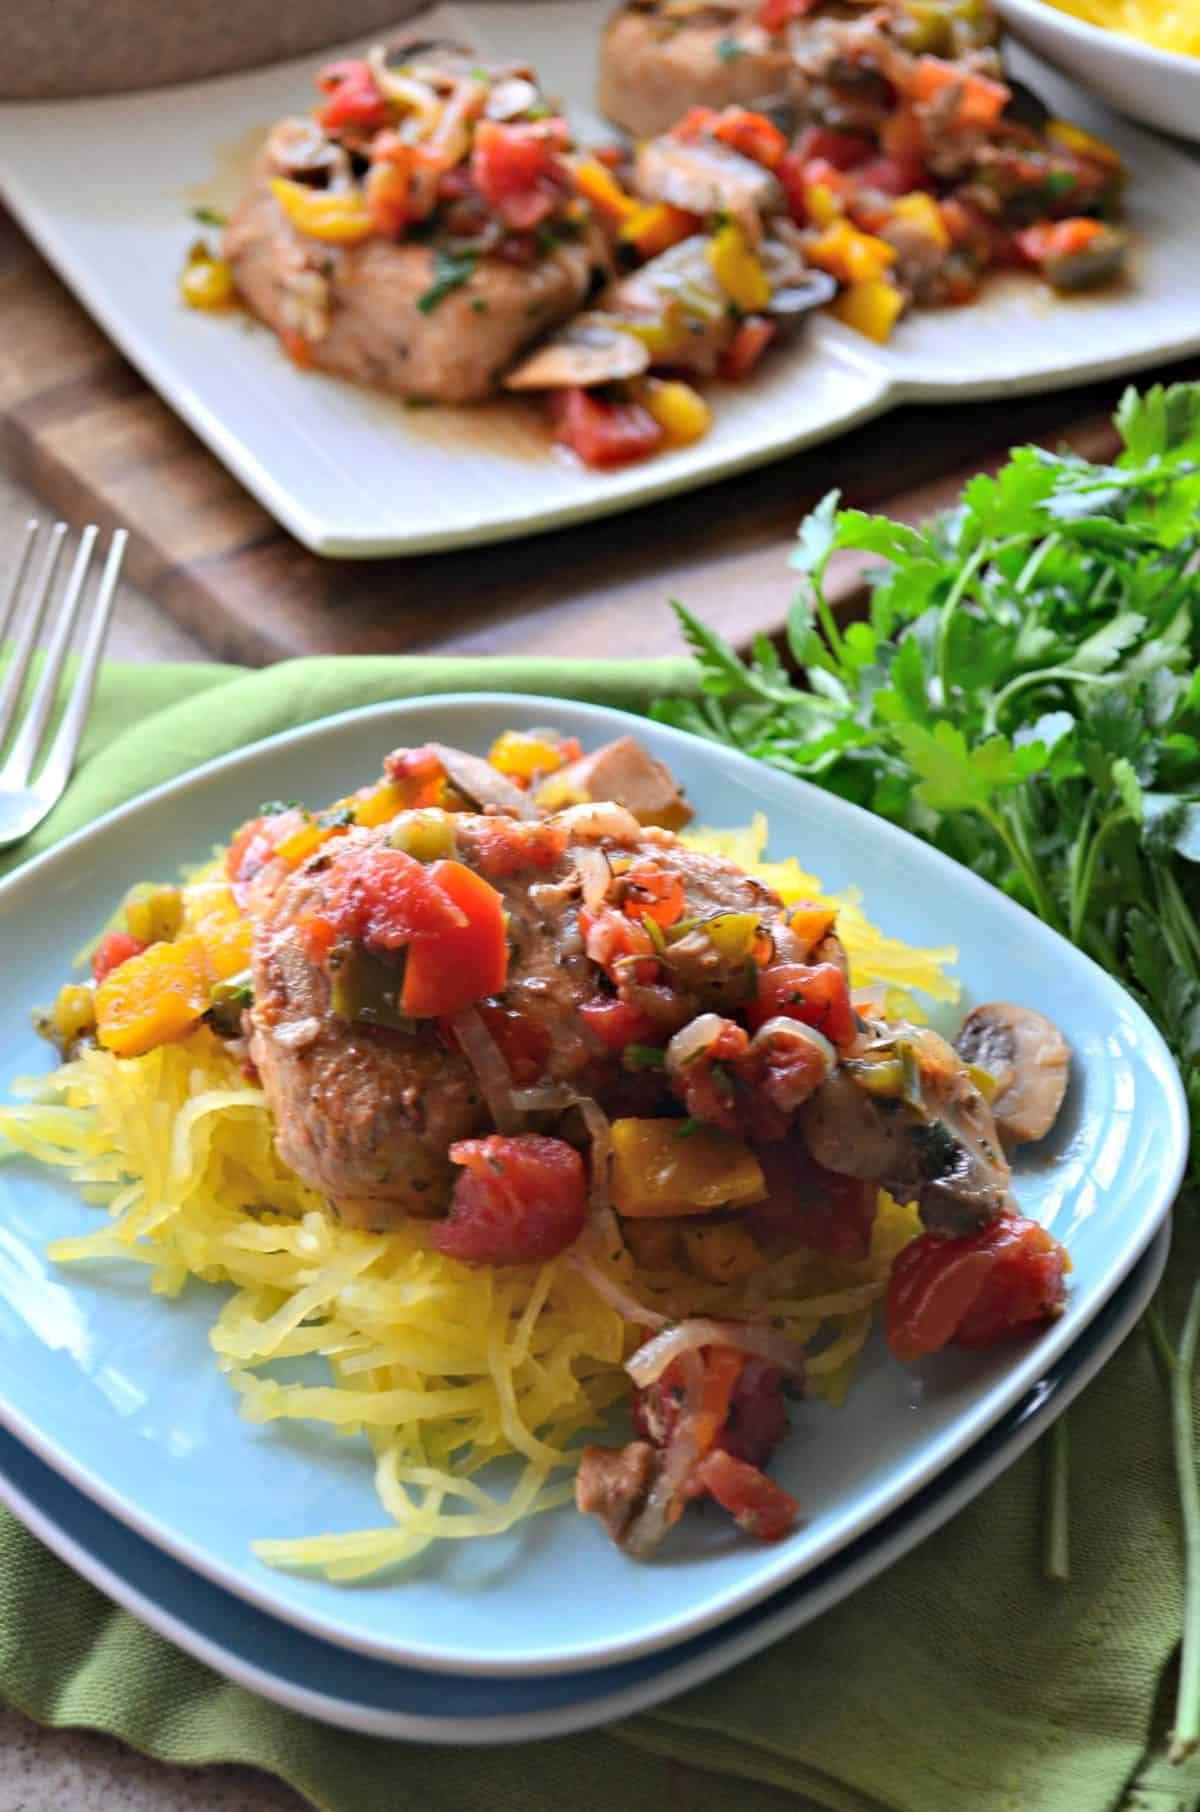 closeup top view of pork chops covered in herbs, tomatoes, mushrooms, over spaghetti squash.